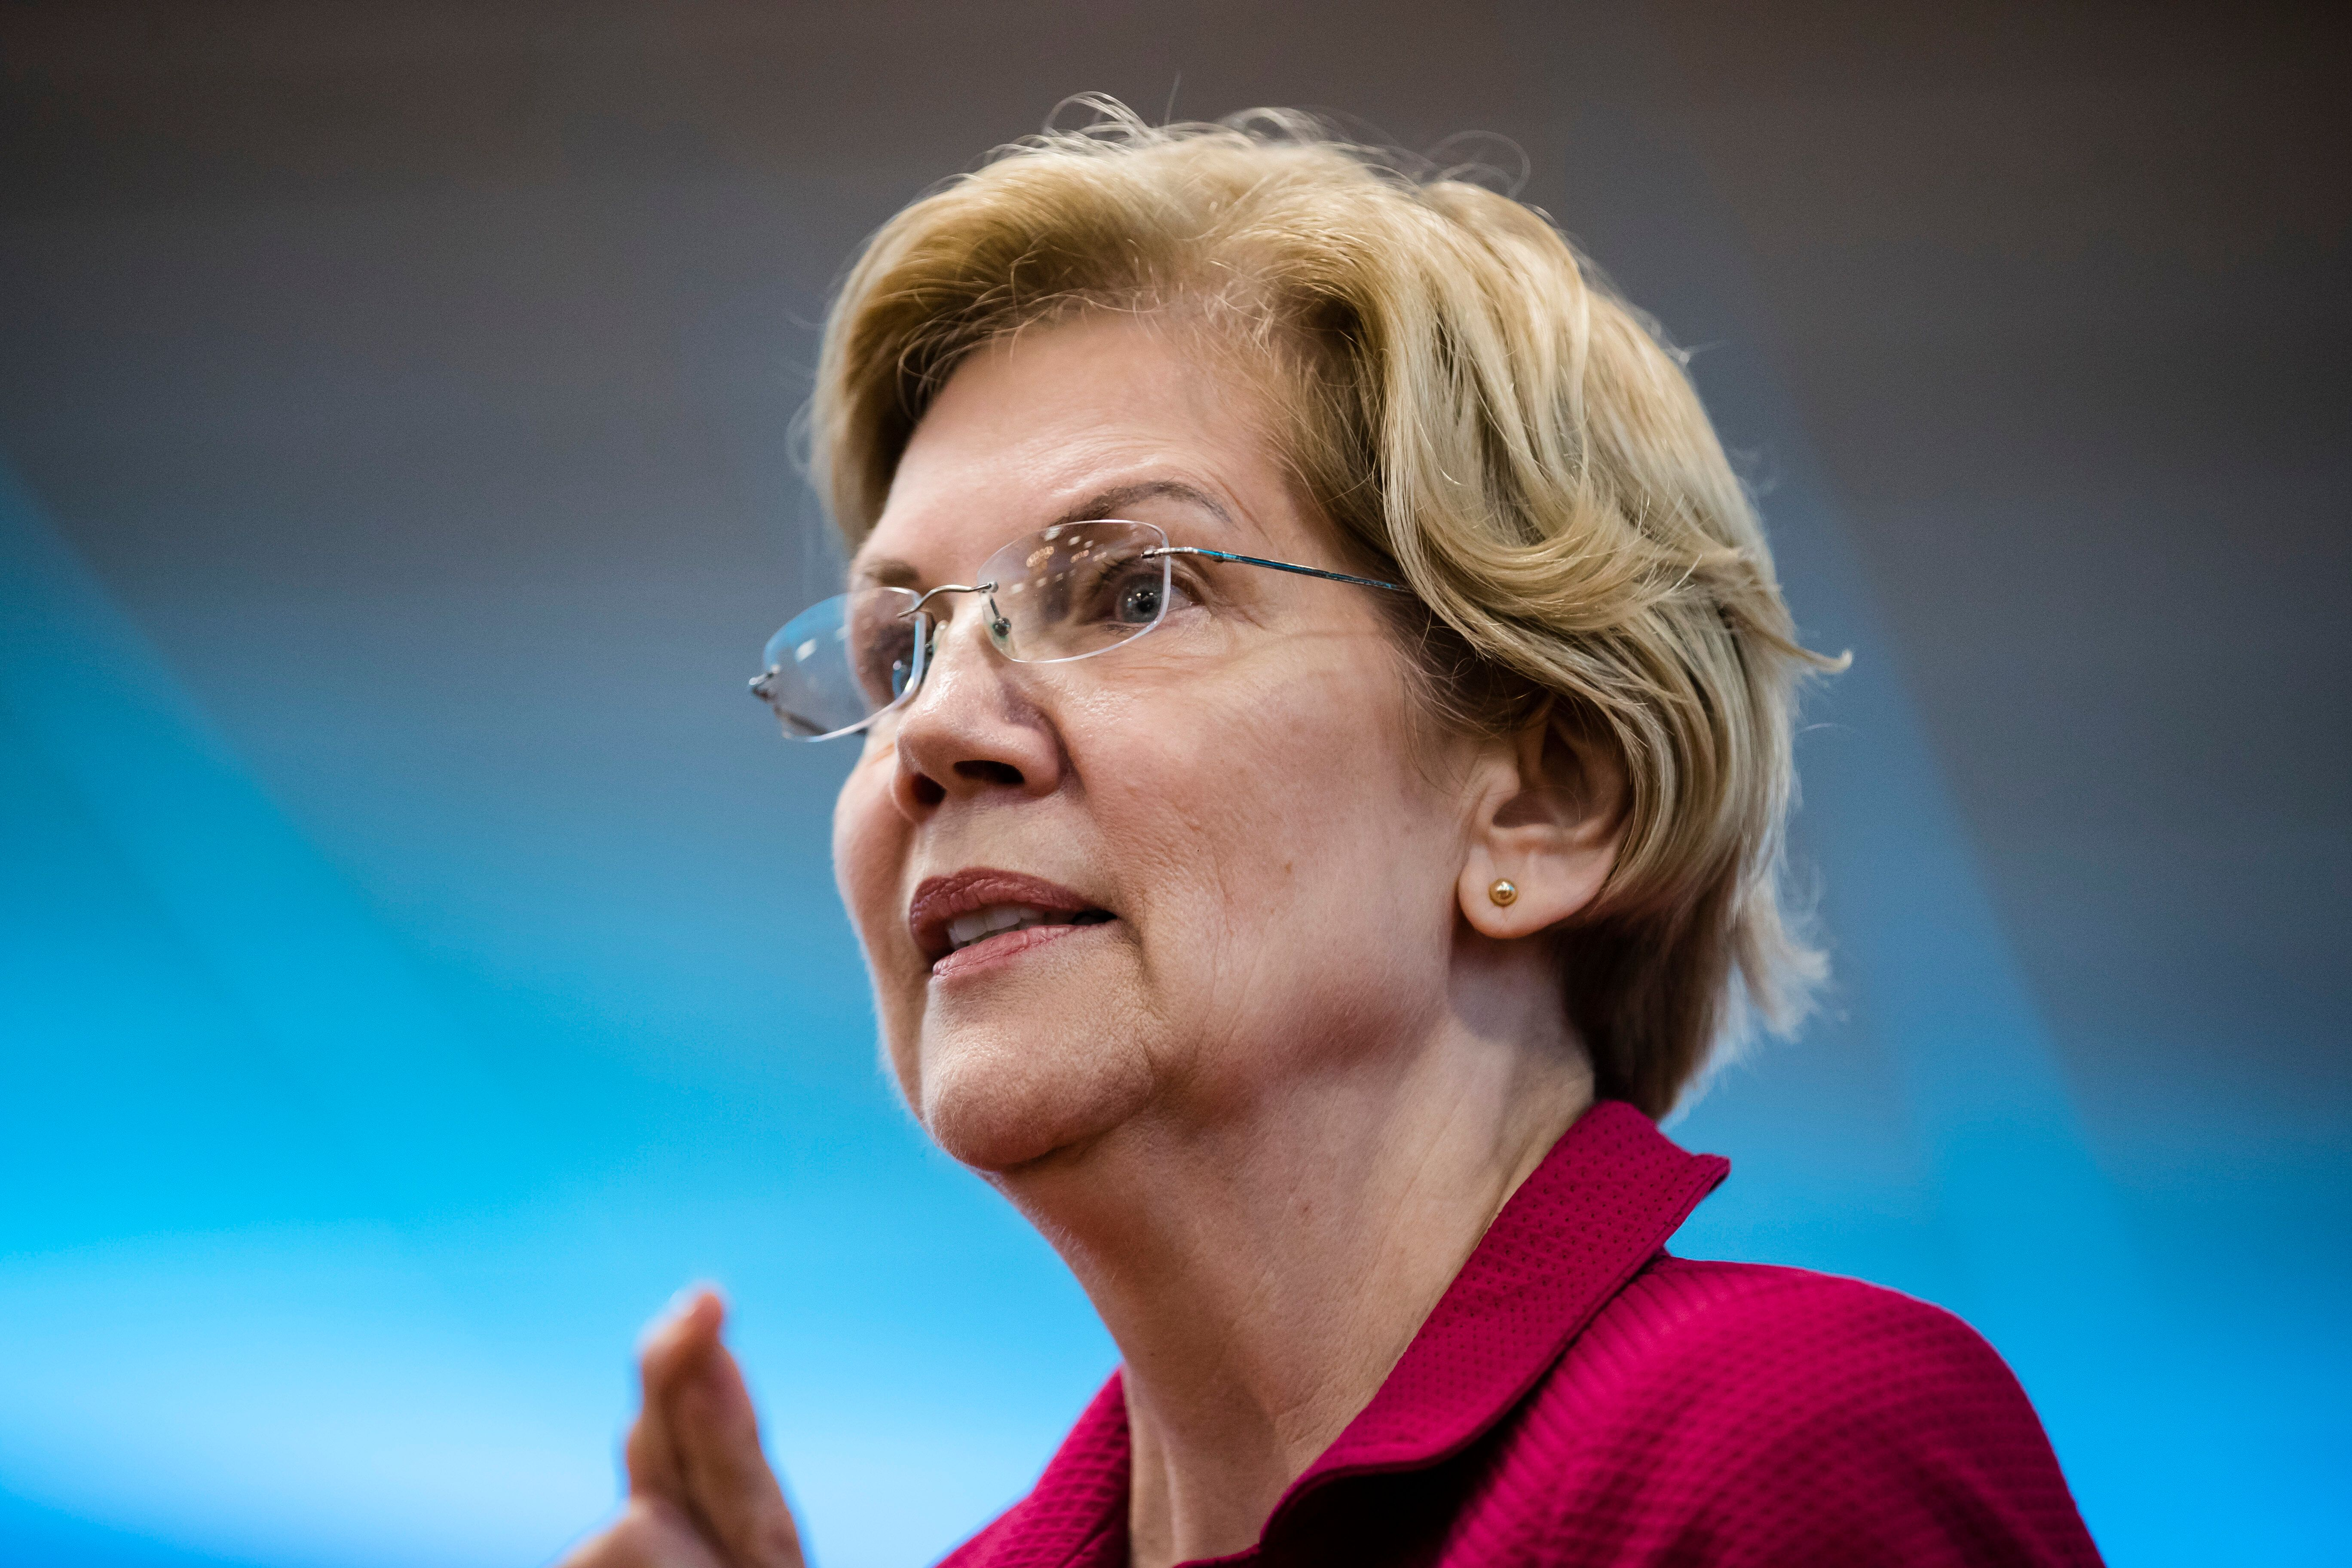 Democratic presidential candidate Sen. Elizabeth Warren, D-Mass., during an American Federation of Teachers town hall event, at the Plumbers Local 690 Union Hall in Philadelphia, Monday, May 13, 2019. (AP Photo/Matt Rourke)